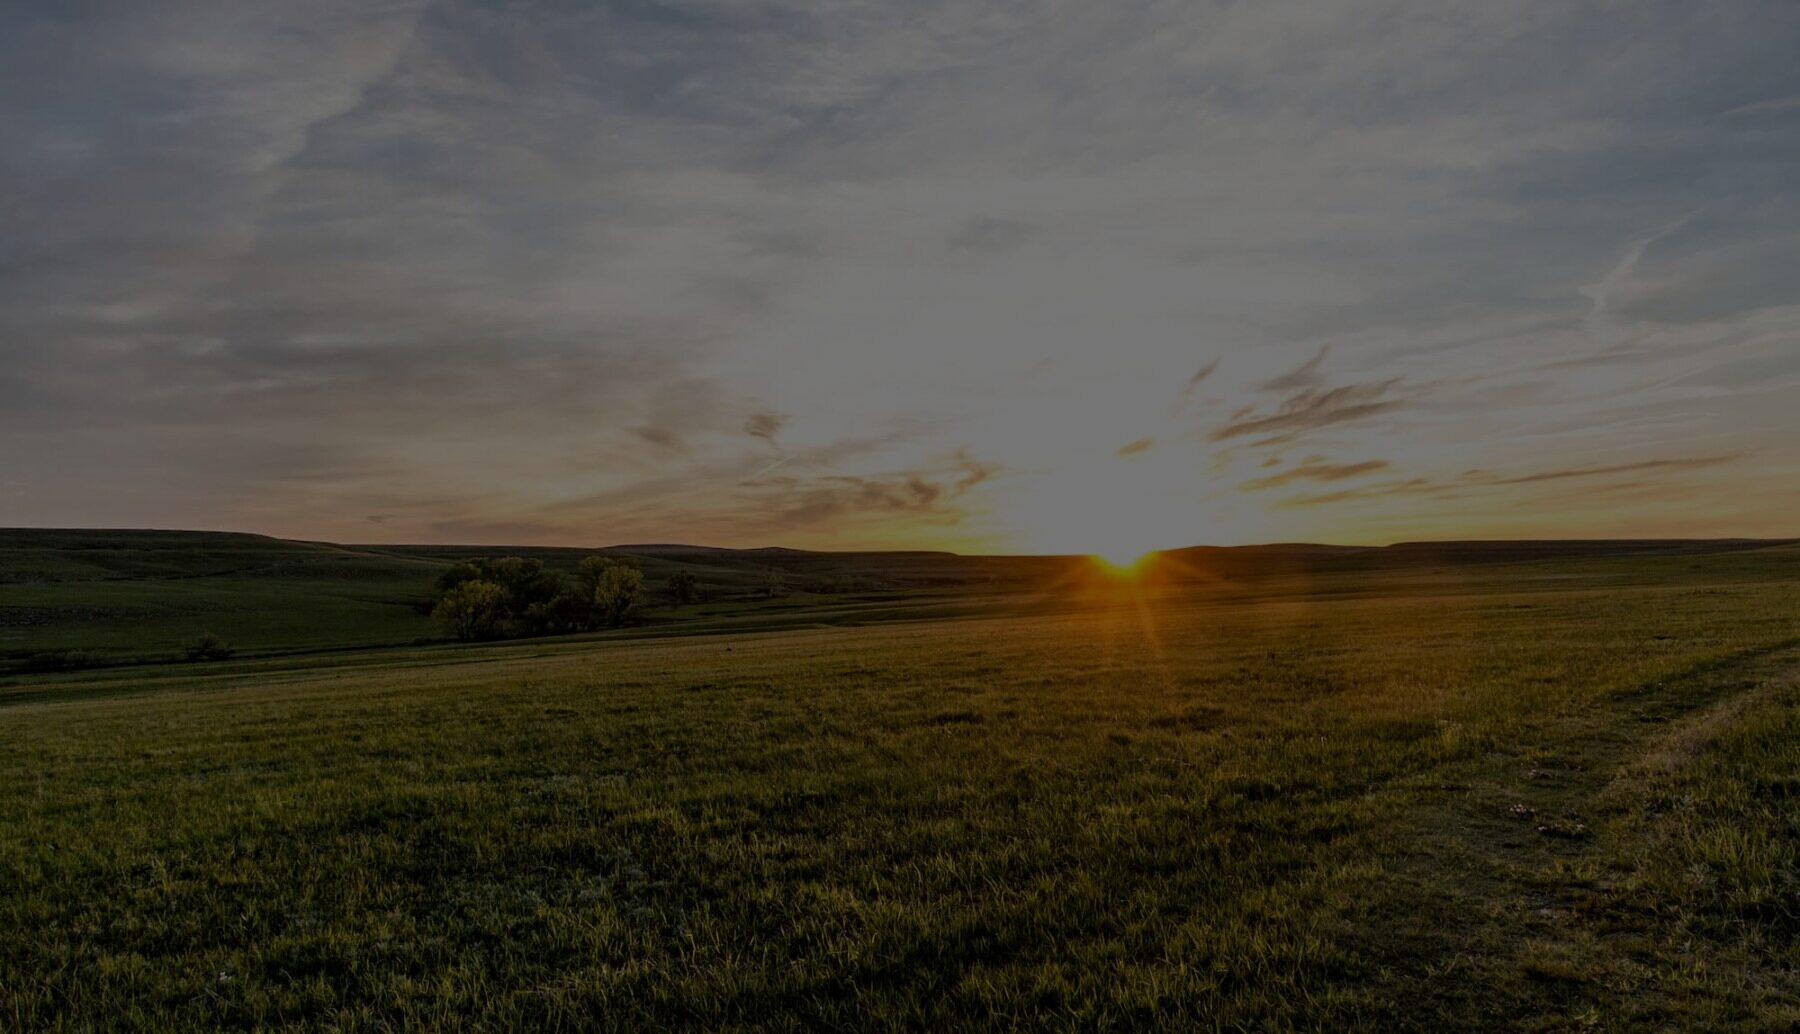 Large open farmland or field at sunset